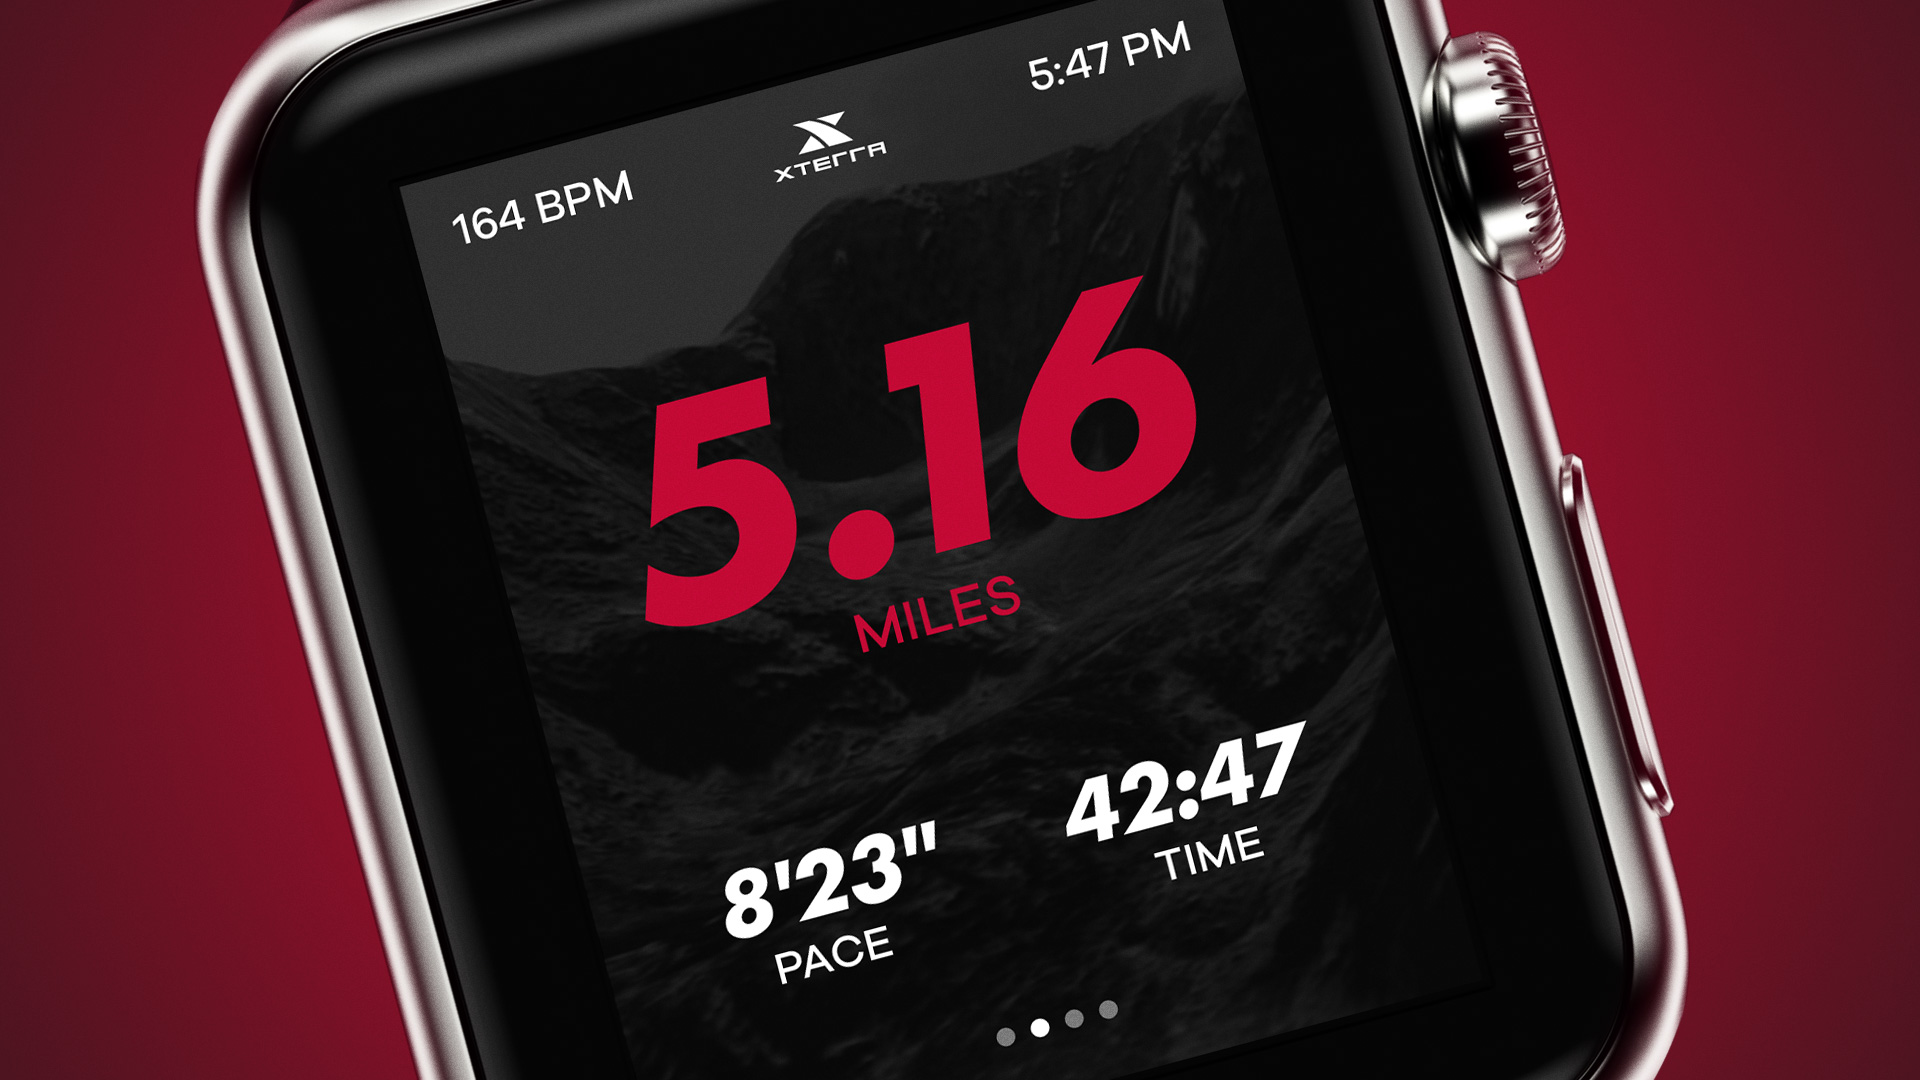 XTERRA - Apple Watch Running App Zoom